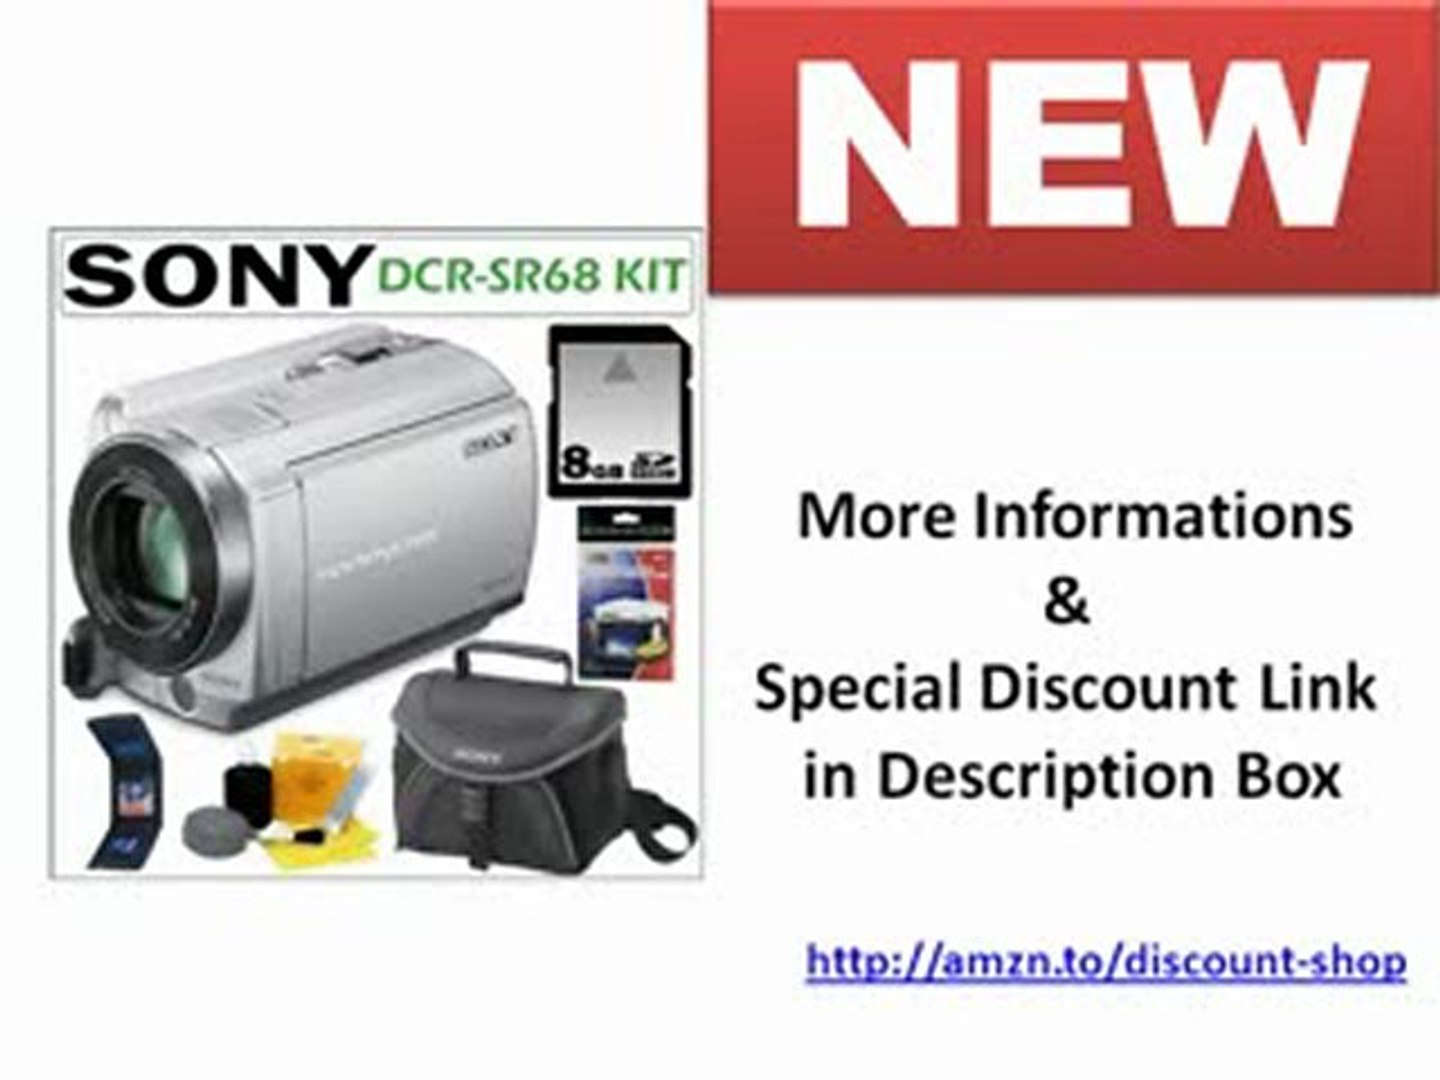 Sony DCR-SR68 80GB Hard Disk Drive Handycam Camcorder (Silver) Unboxing | Sony DCR-SR68 80GB Hard Di